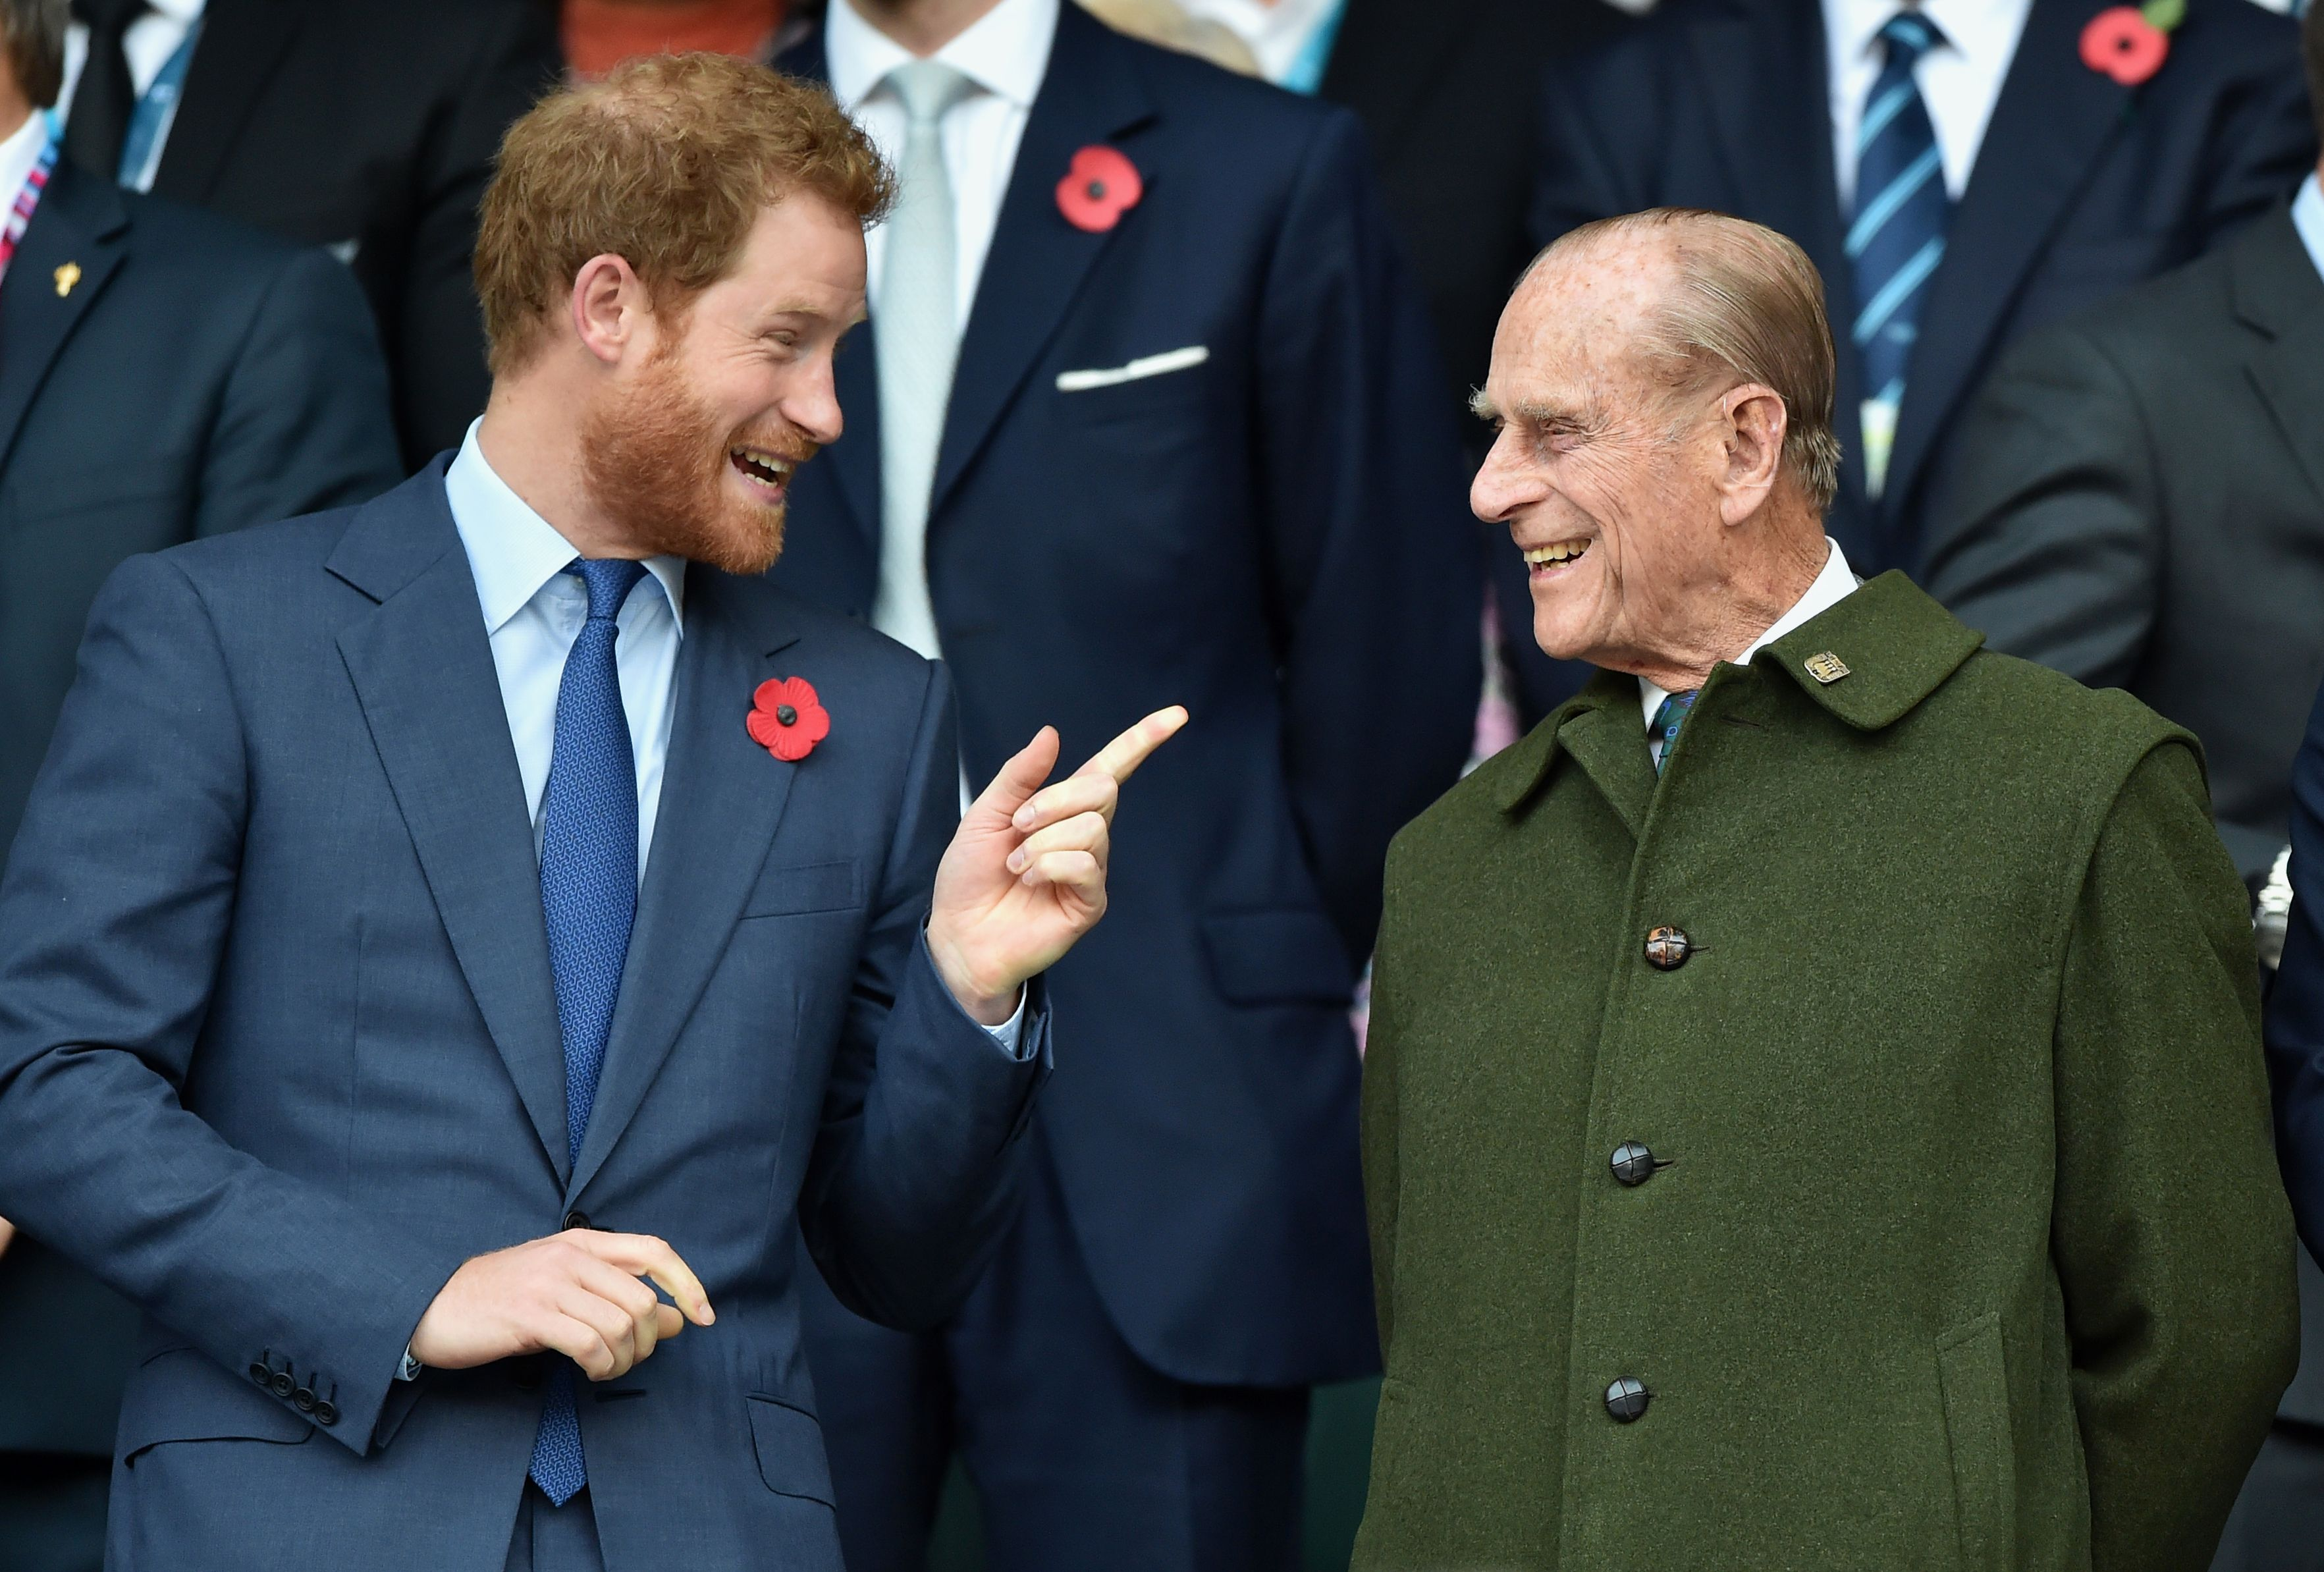 Prince Harry and Prince Philip, Duke of Edinburgh chatting at the 2015 Rugby World Cup Final match between New Zealand and Australia at Twickenham Stadium in London, England | Photo: Getty Images